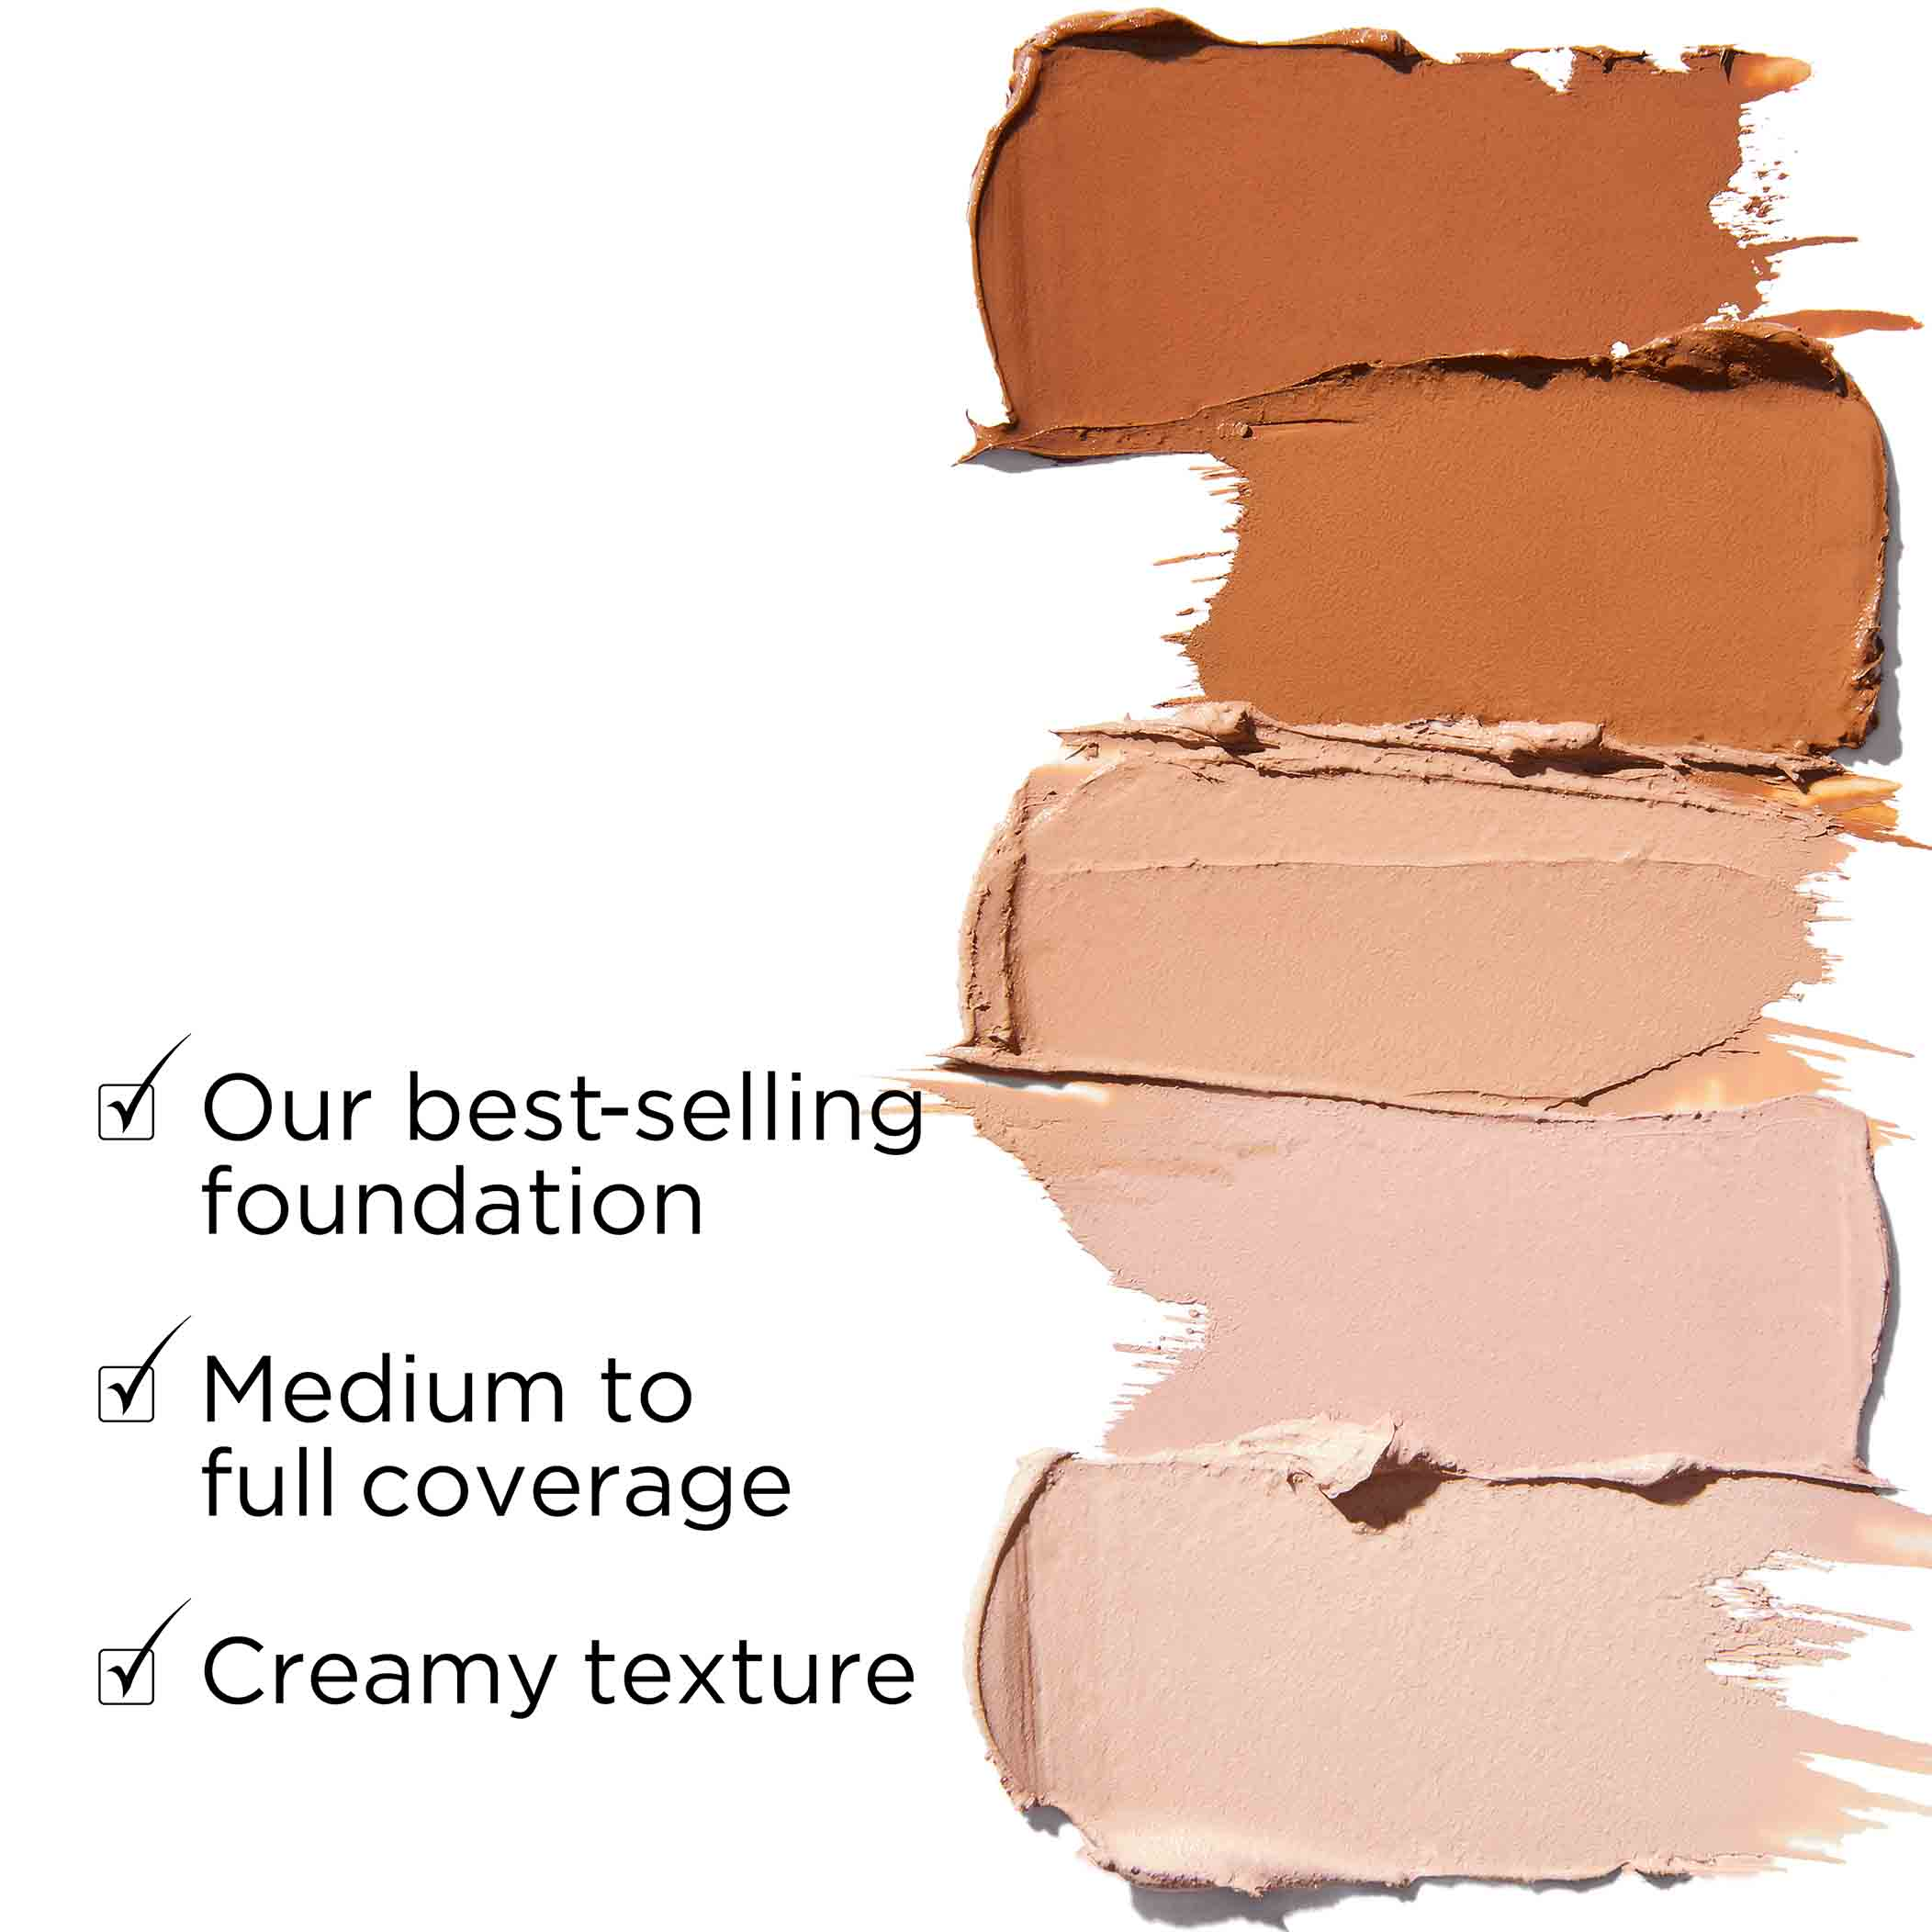 Sponge-on foundation is our best-selling foundation, medium to full coverage, creamy texture